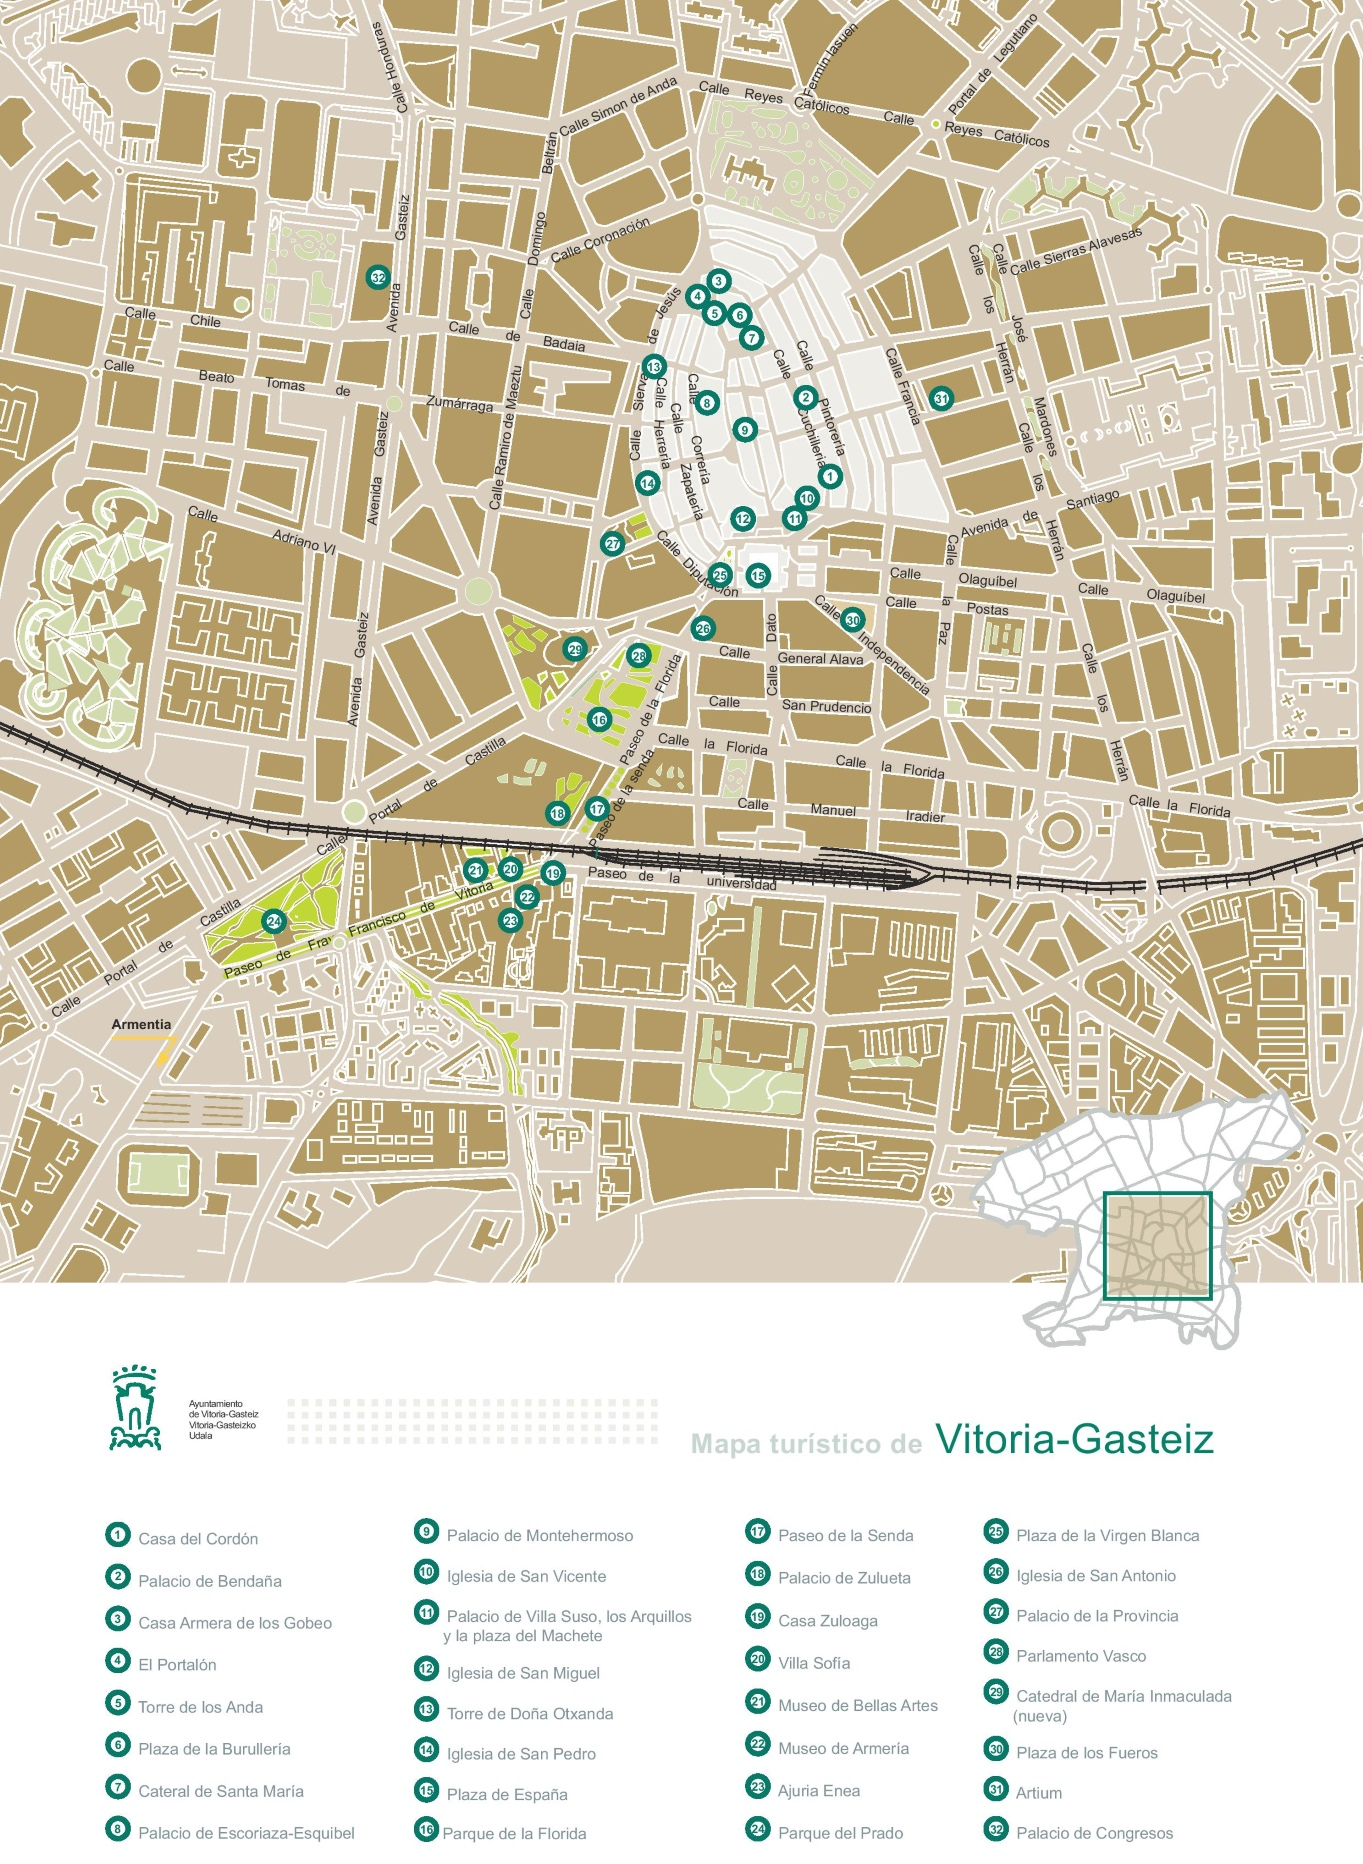 VitoriaGasteiz sightseeing map